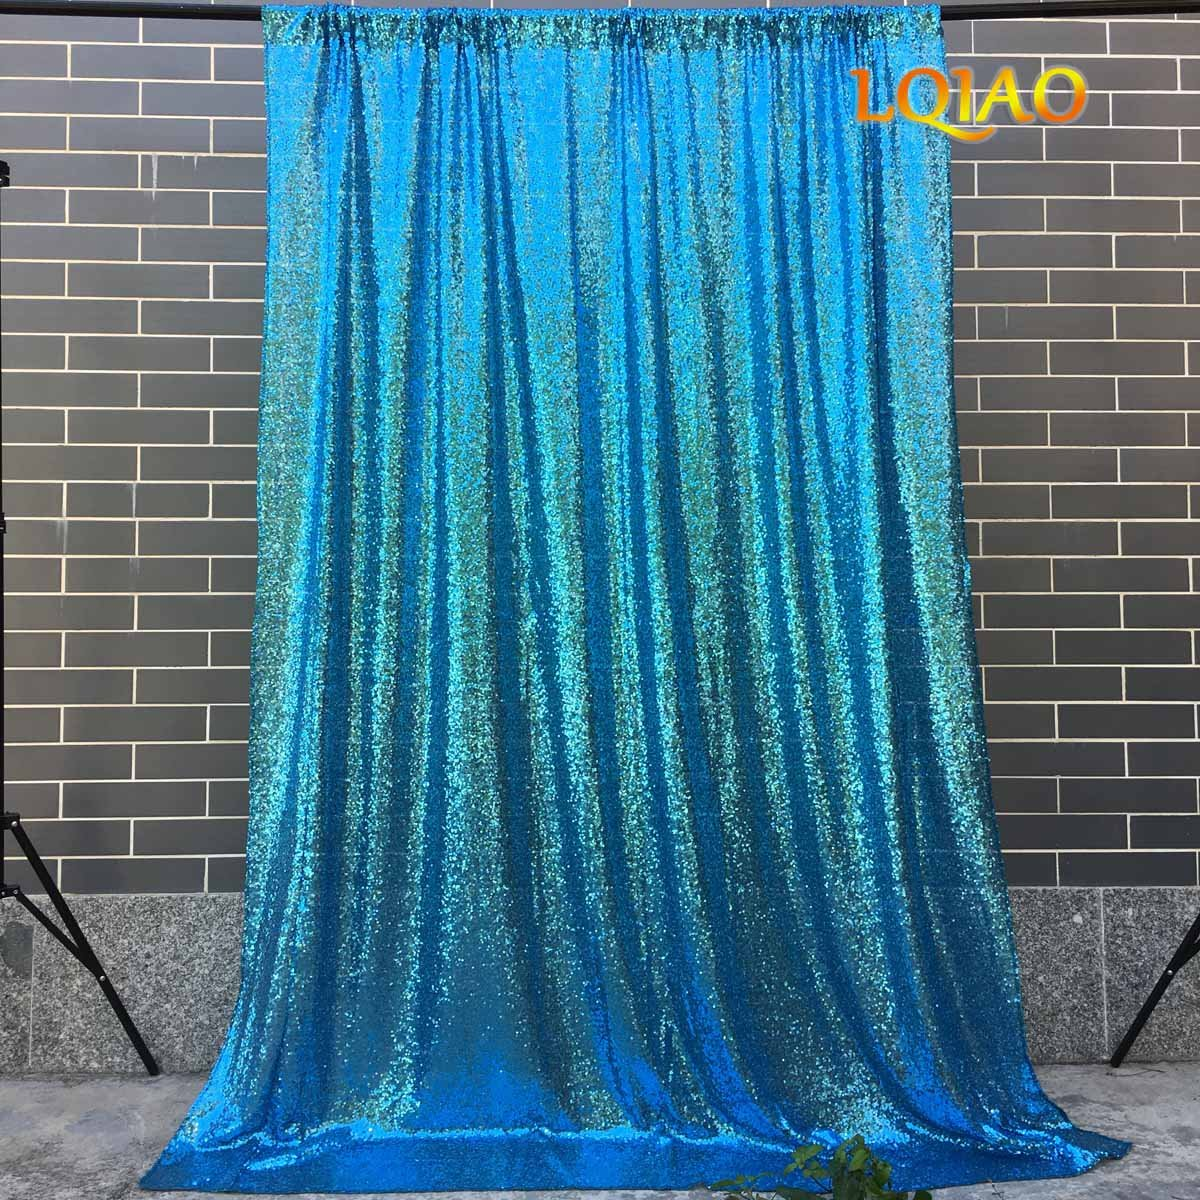 LQIAO Wedding Christmas Backdrop Glitter Turquoise 4FTx10FT Sequin Backdrop Window Curtain Photo Booth Photography Party Decoration